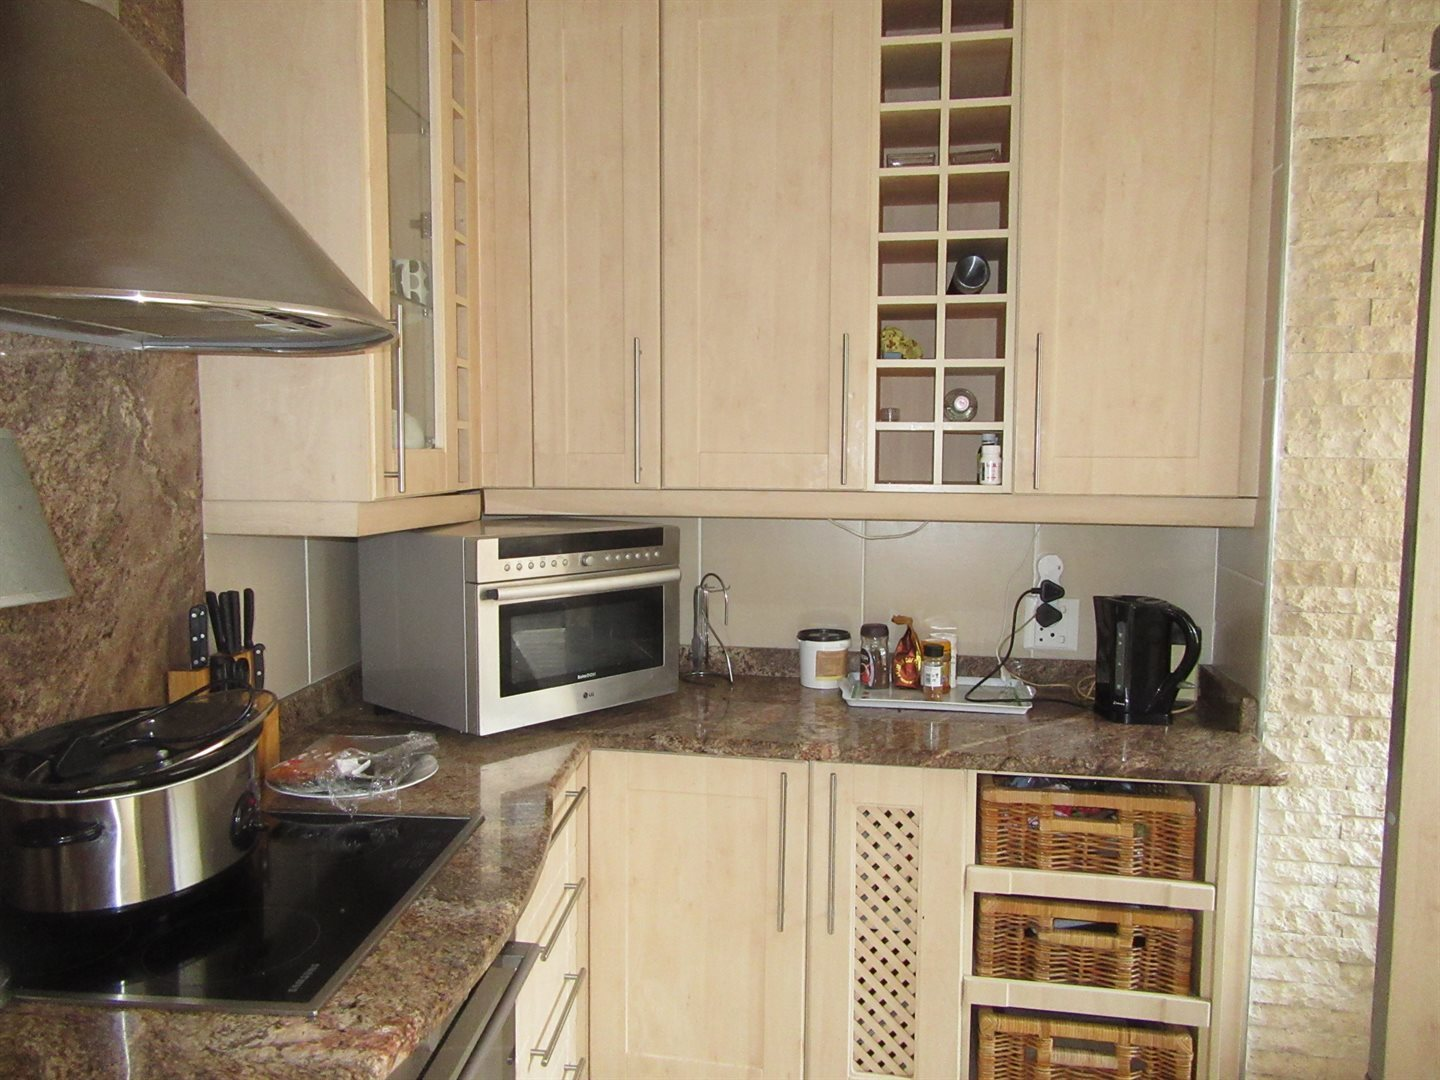 Bryanston East property for sale. Ref No: 13533607. Picture no 10